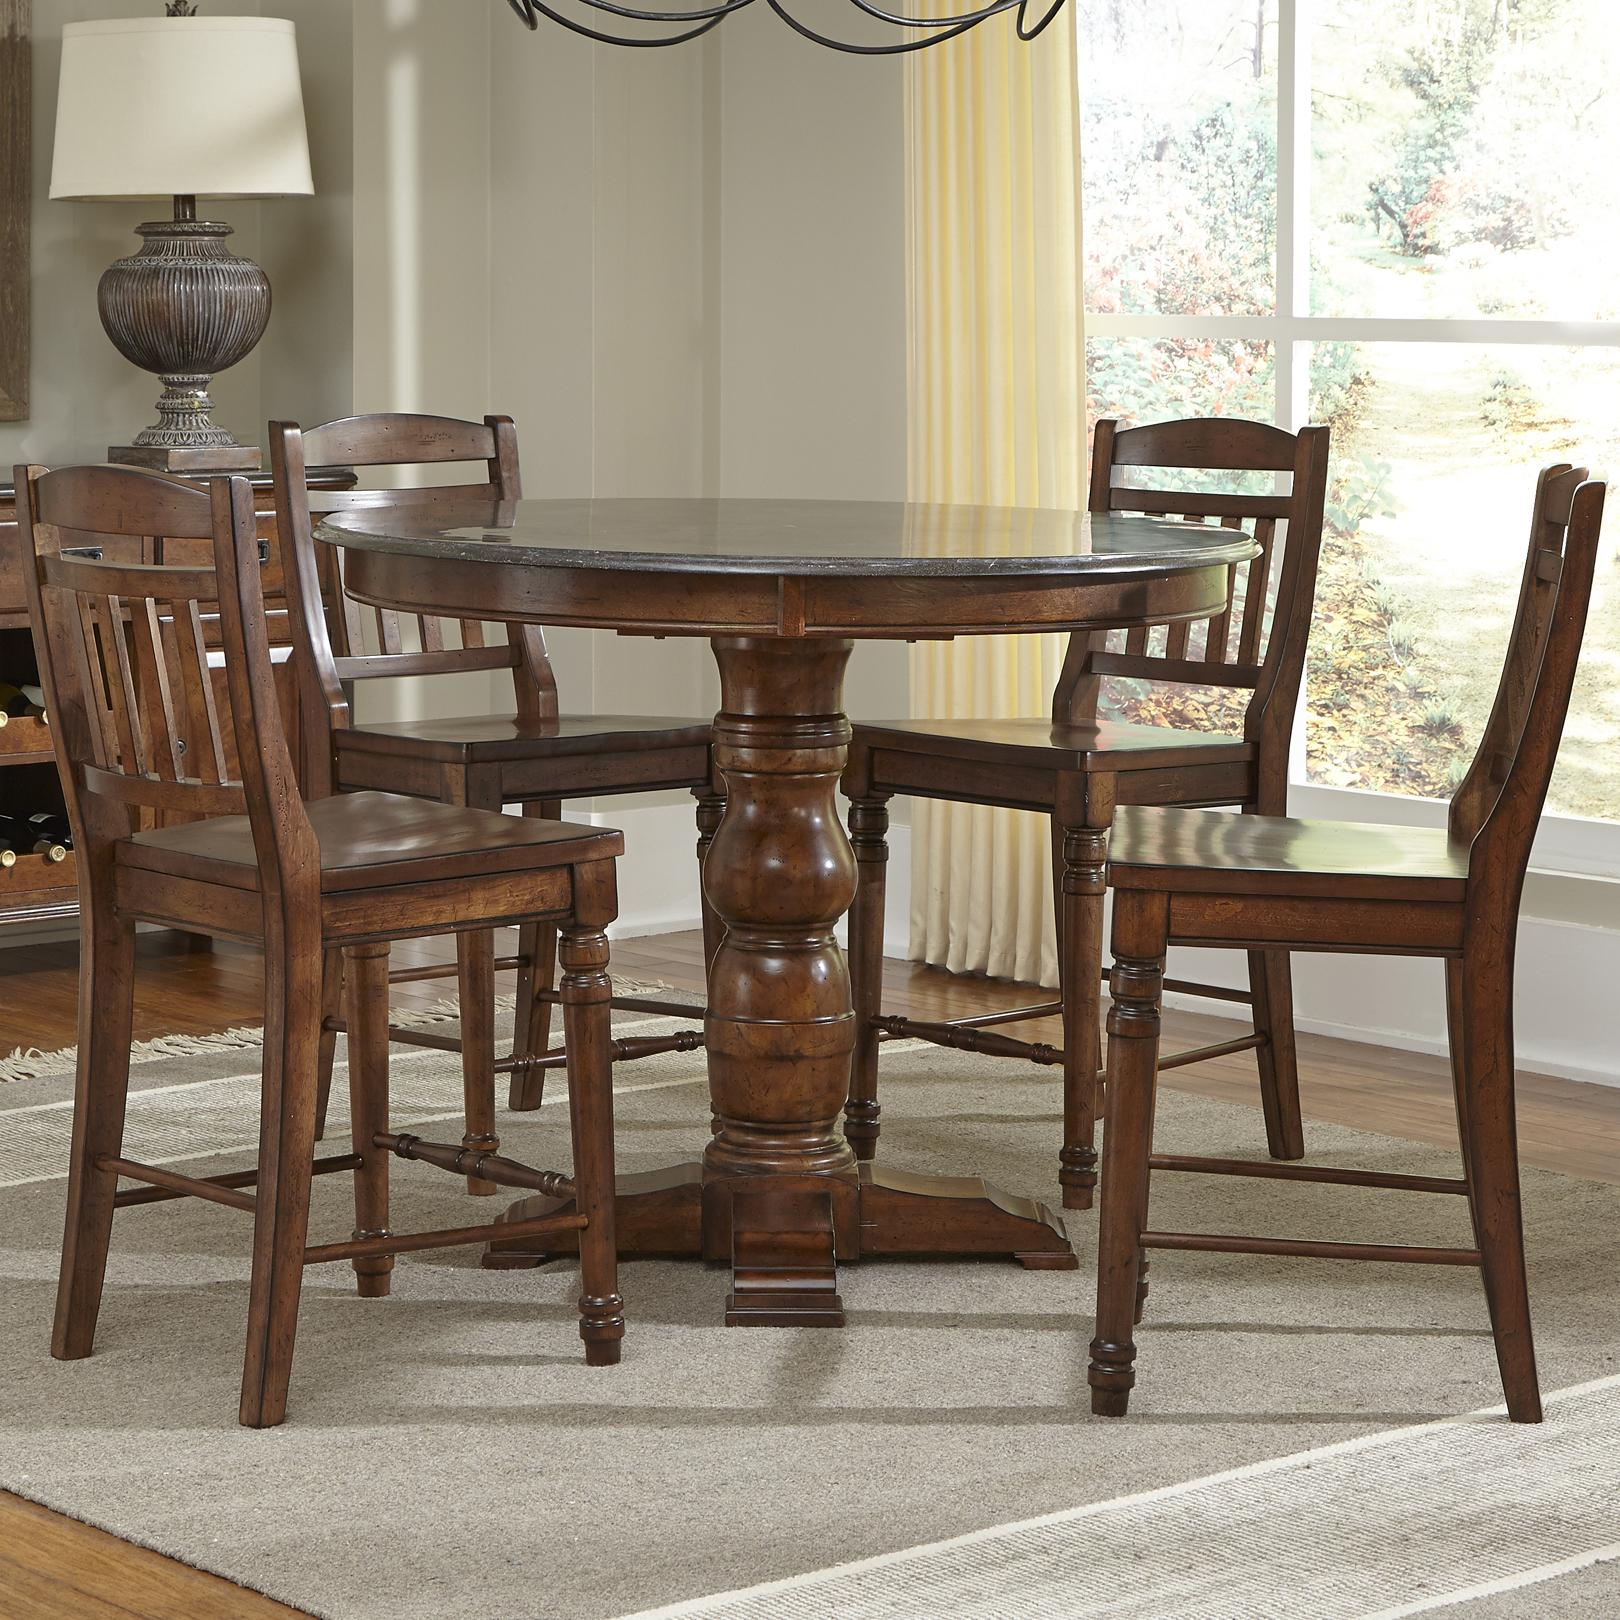 AAmerica Andover Park 5 Piece Counter Height Set - Item Number: ADV-AC-6-20-0+4x3-65-K